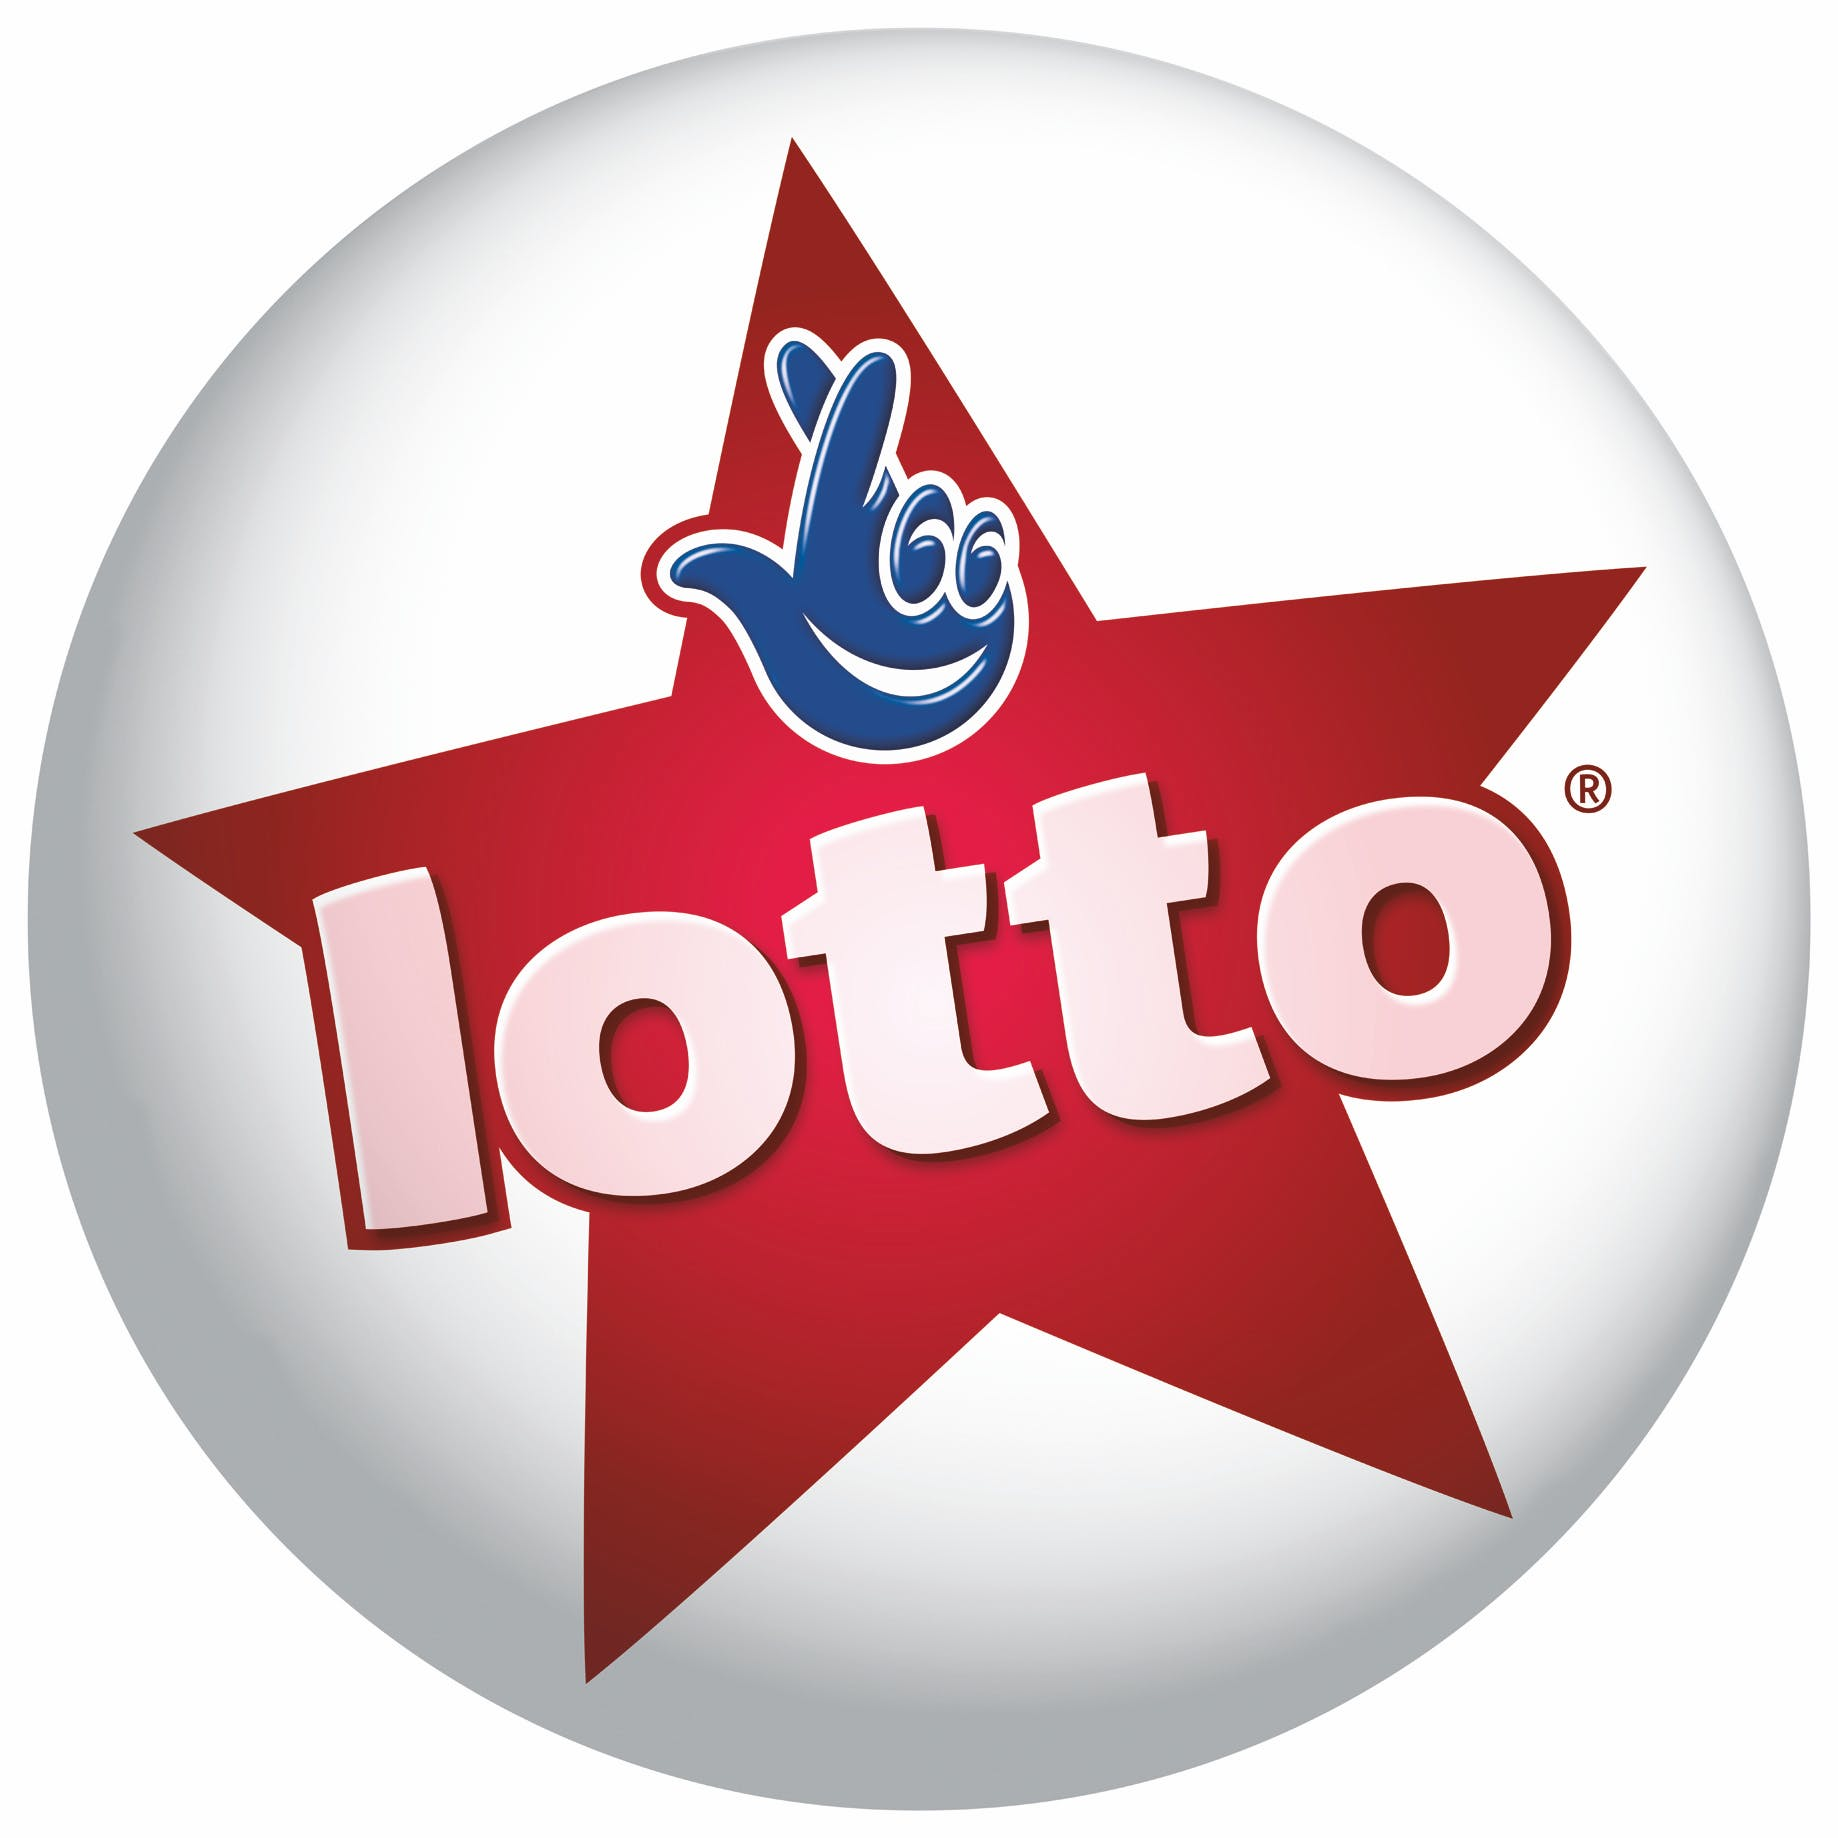 Camelot-lotto-logo-2013.460